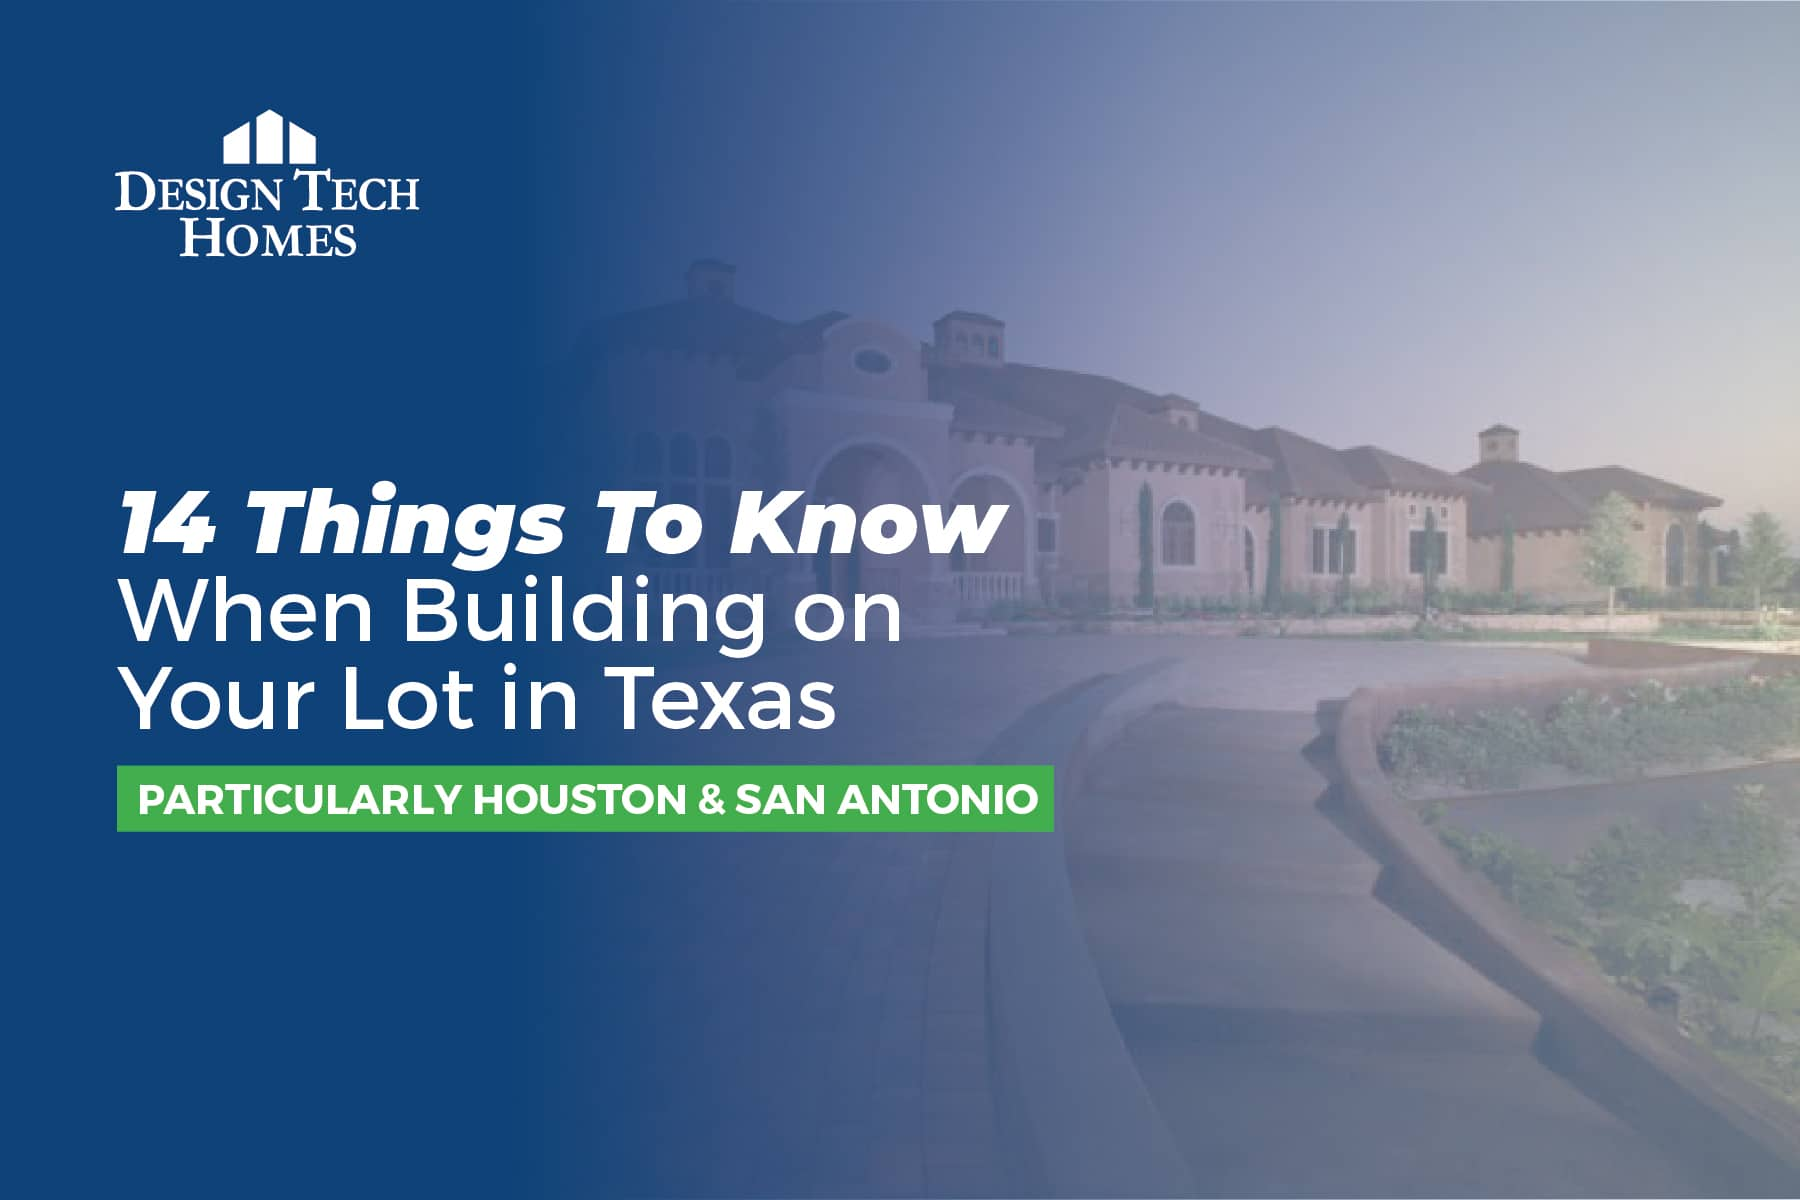 14 things to know when building on your lot in texas